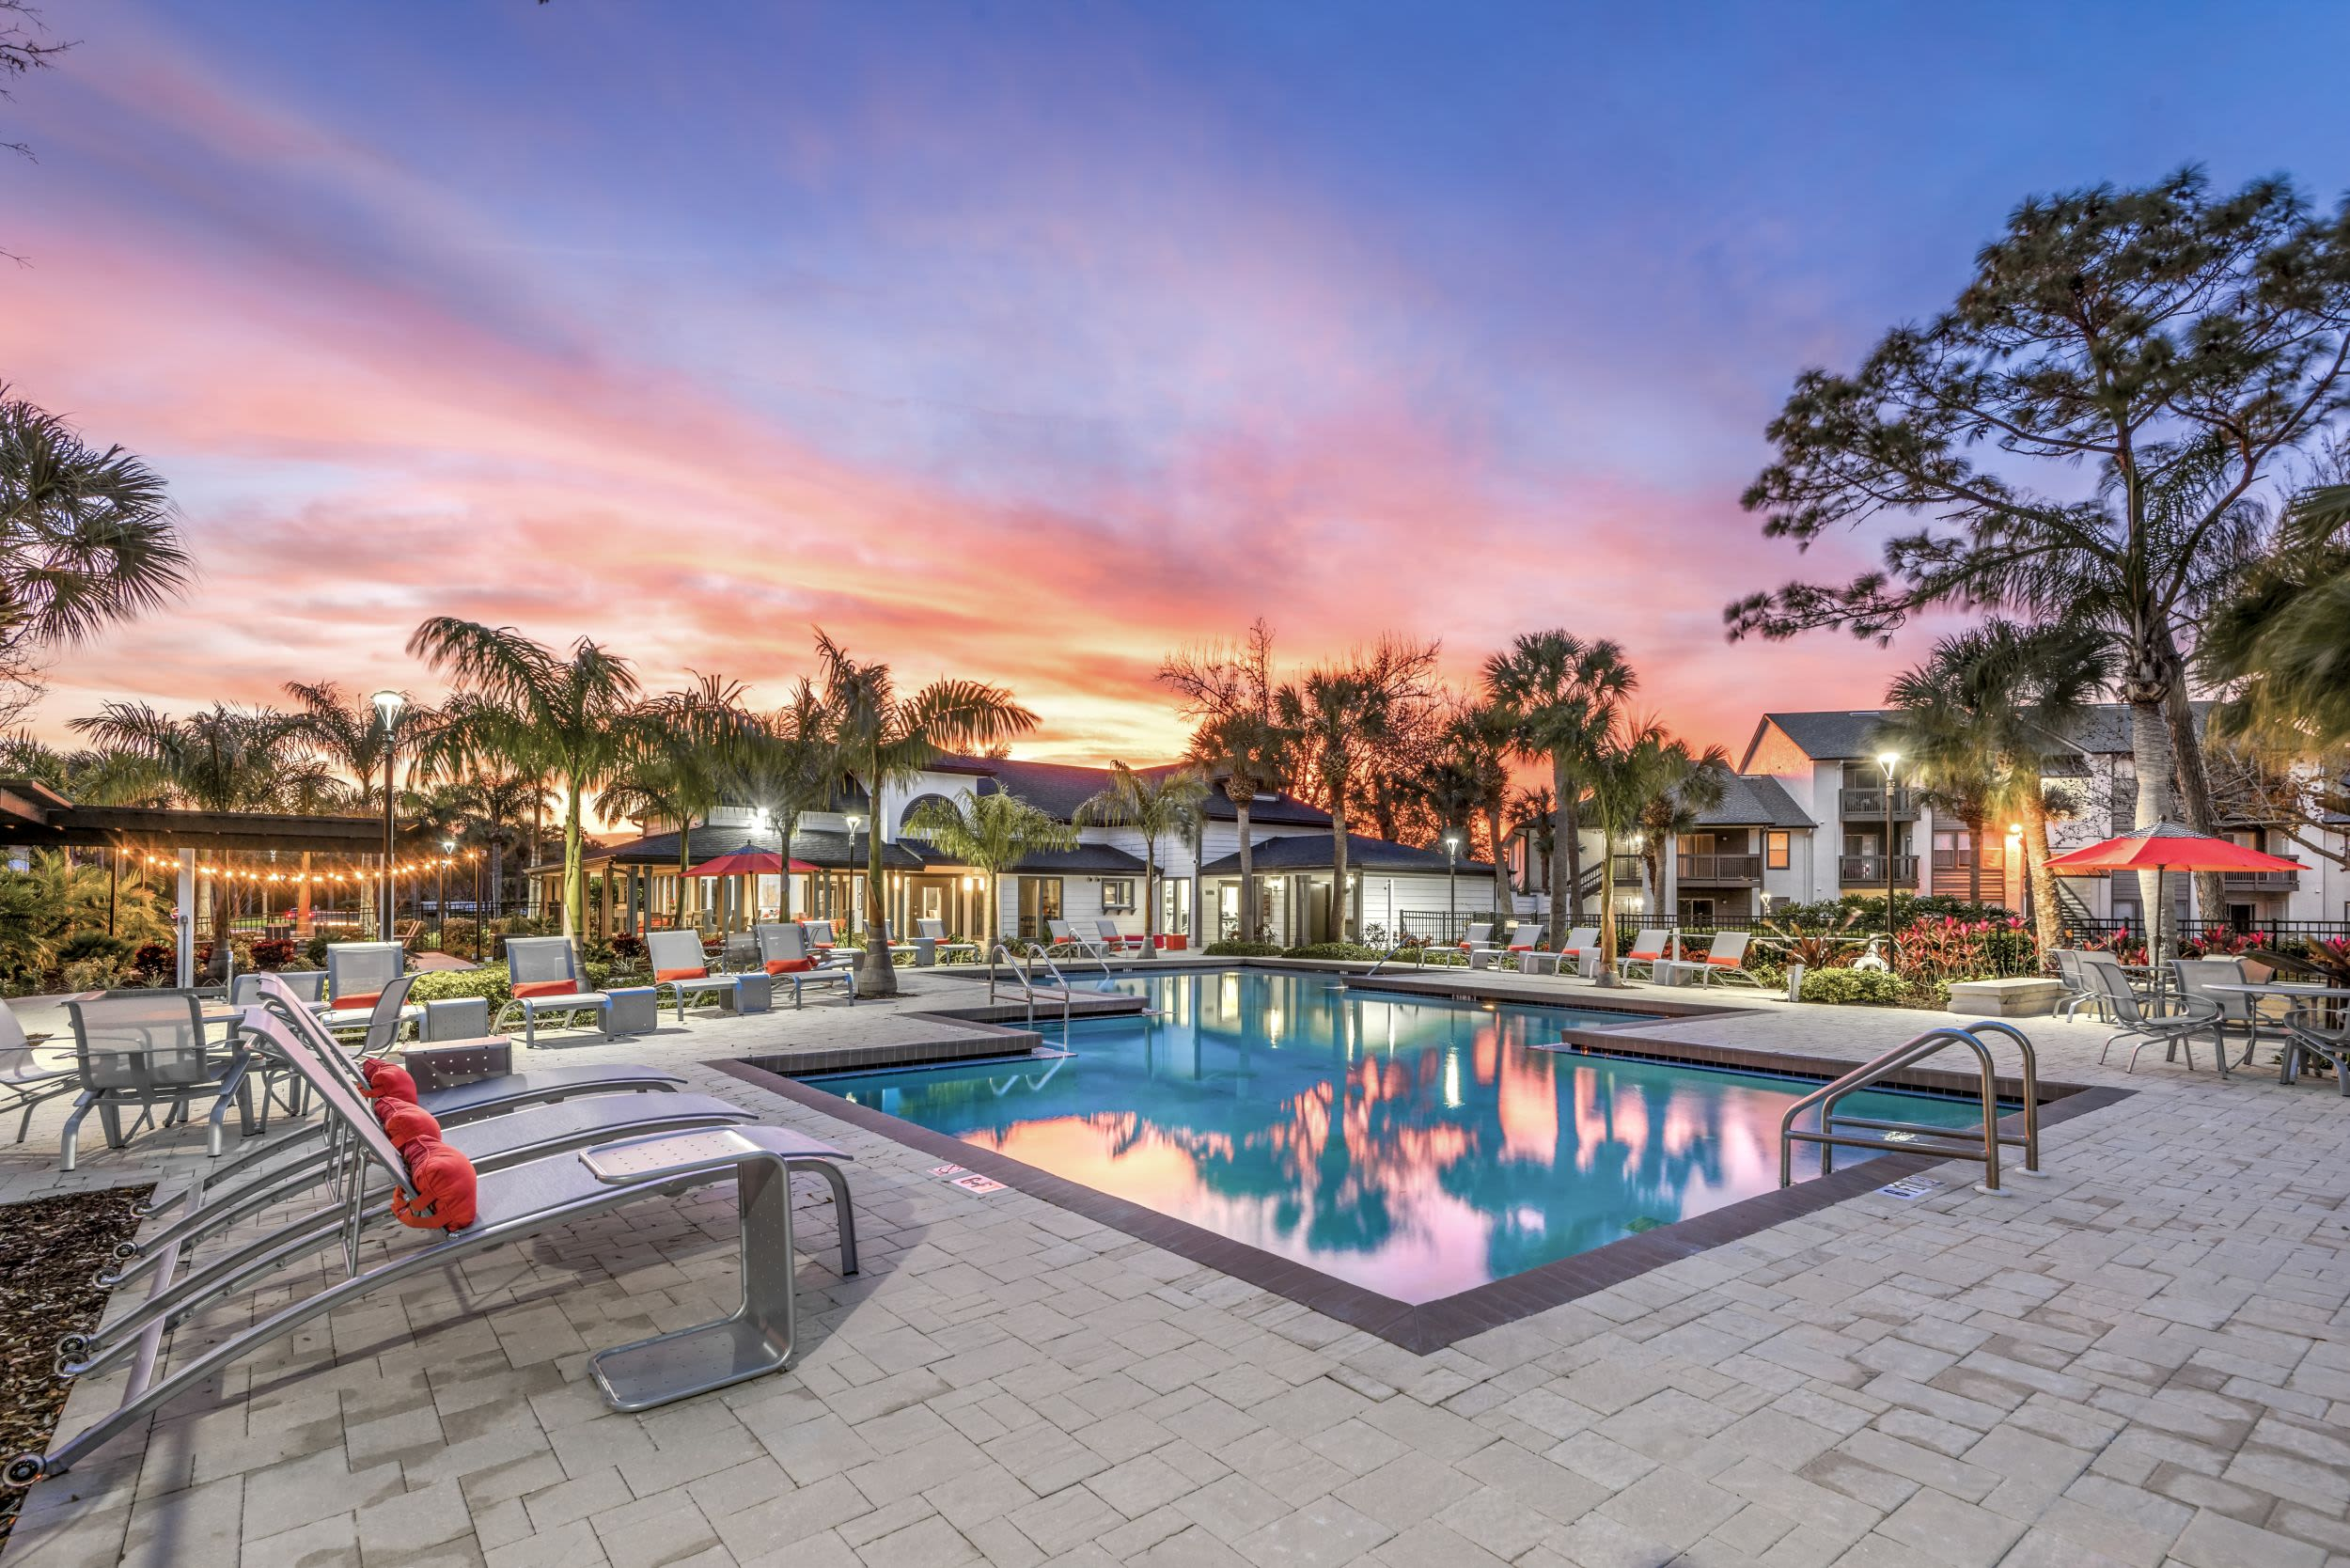 Apartments at The Braxton in Palm Bay, Florida